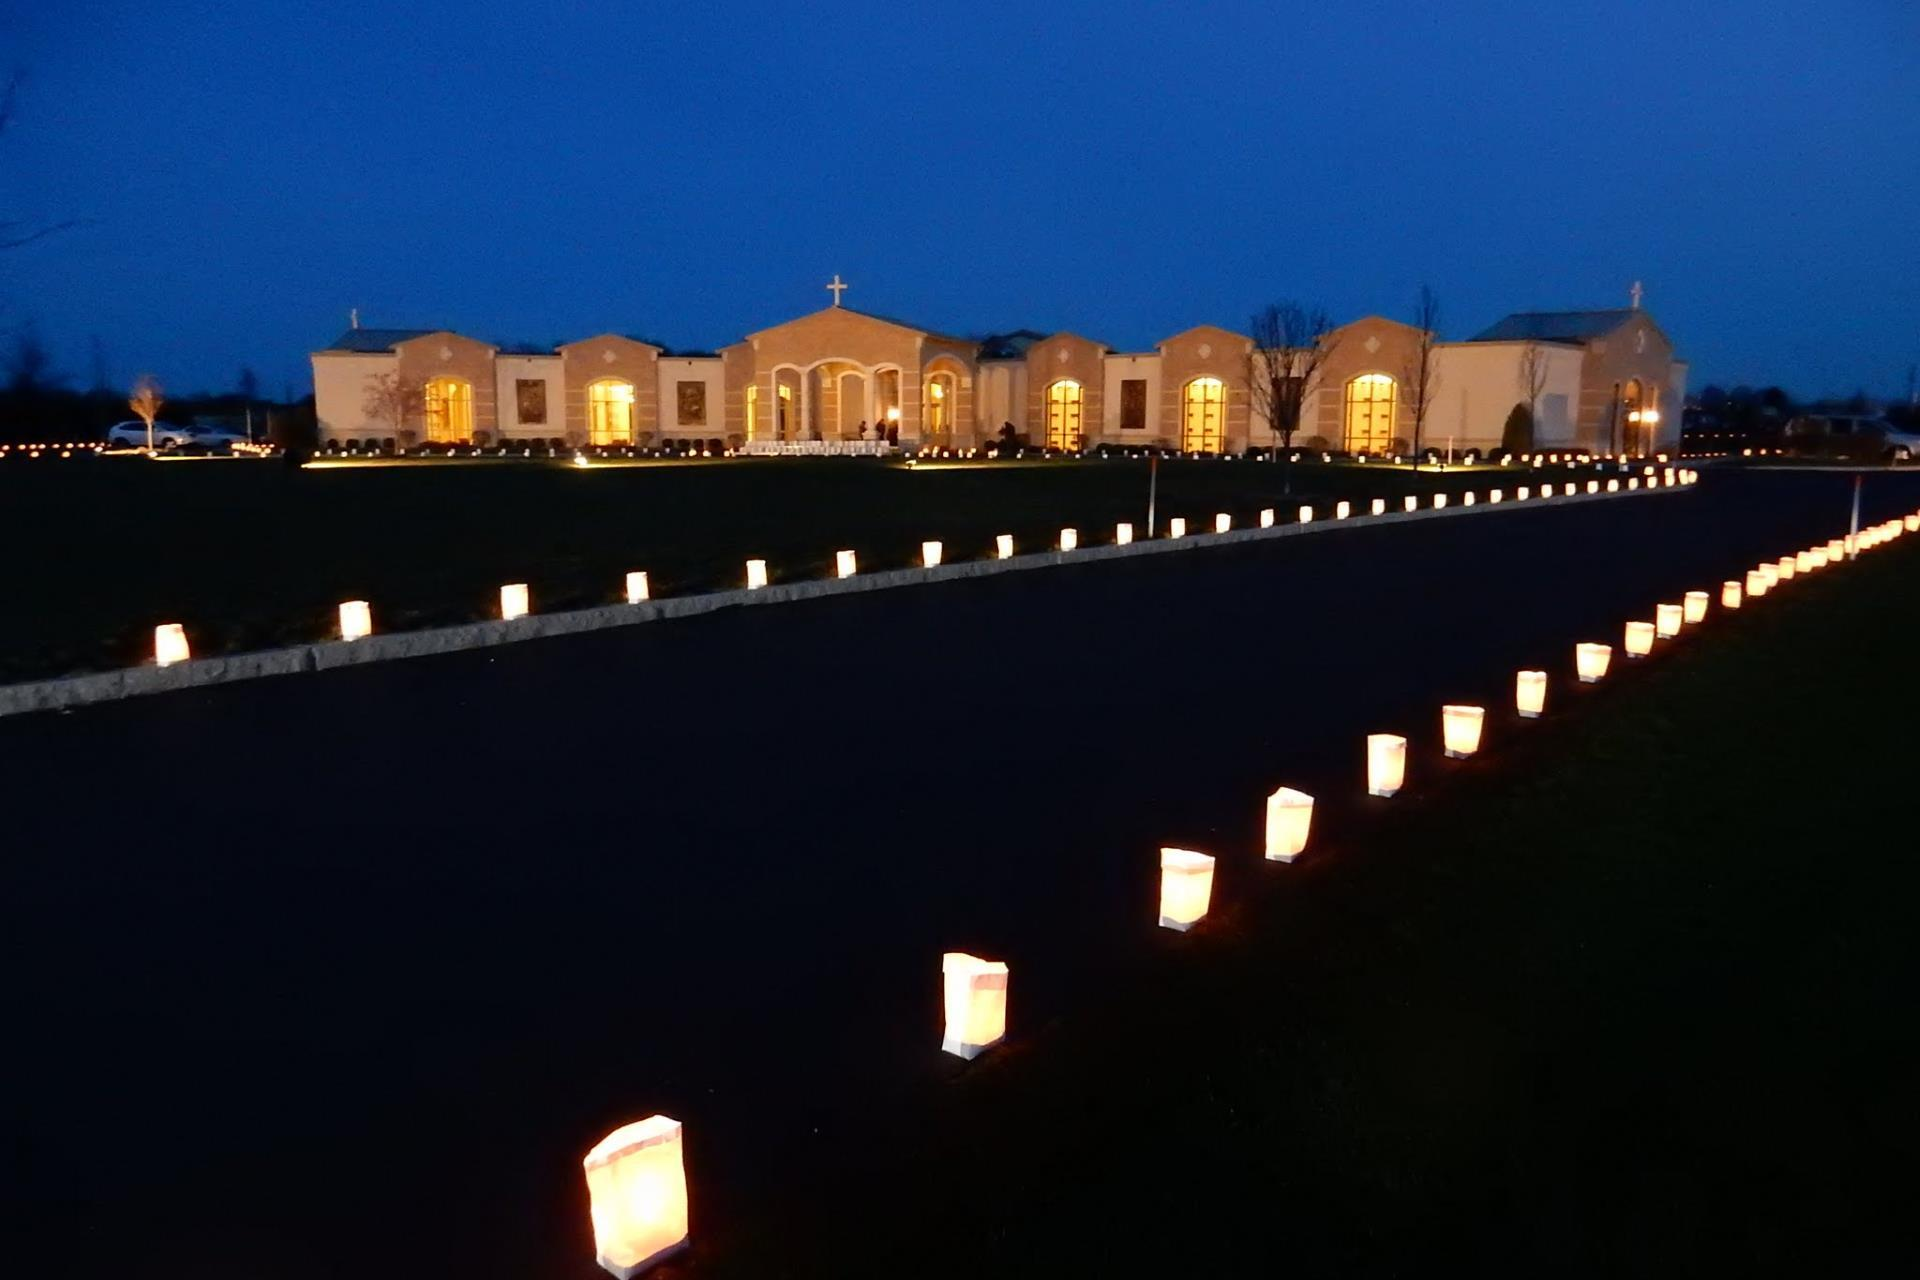 Holy Rosary cremation garden with lanterns